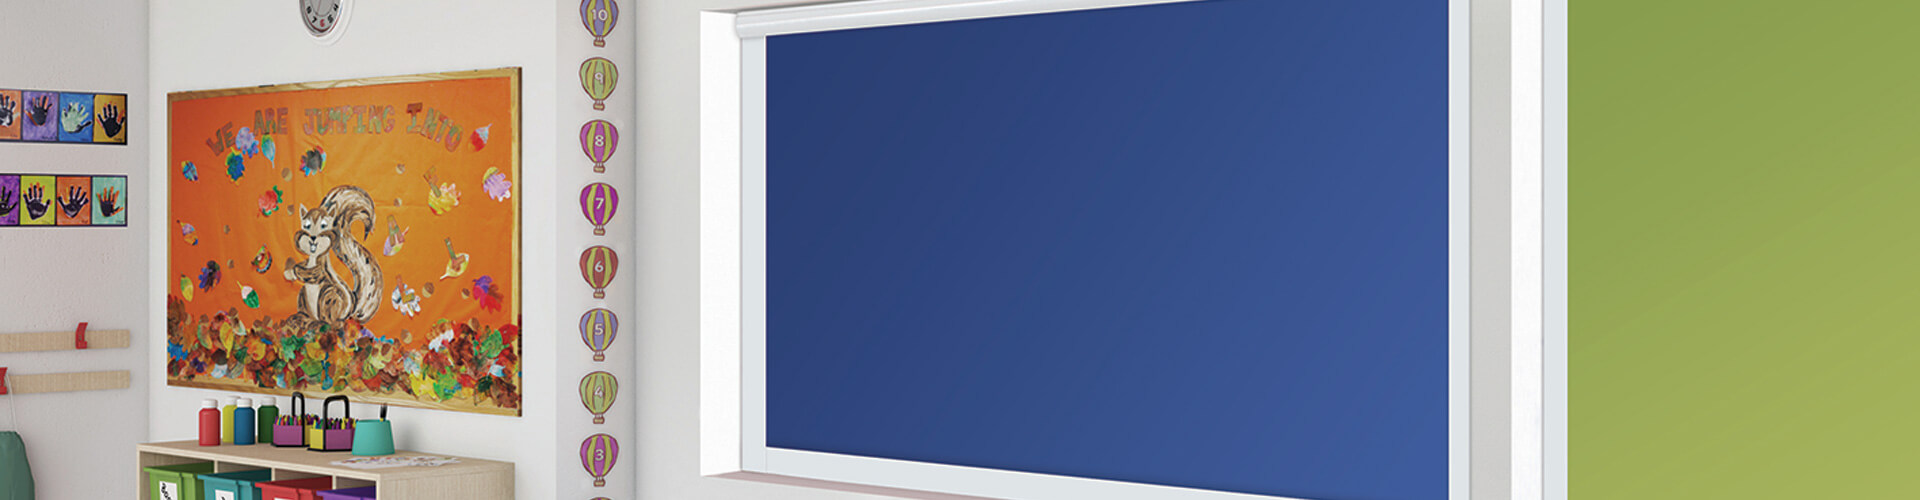 Commercial blackout blinds - blinds for classrooms